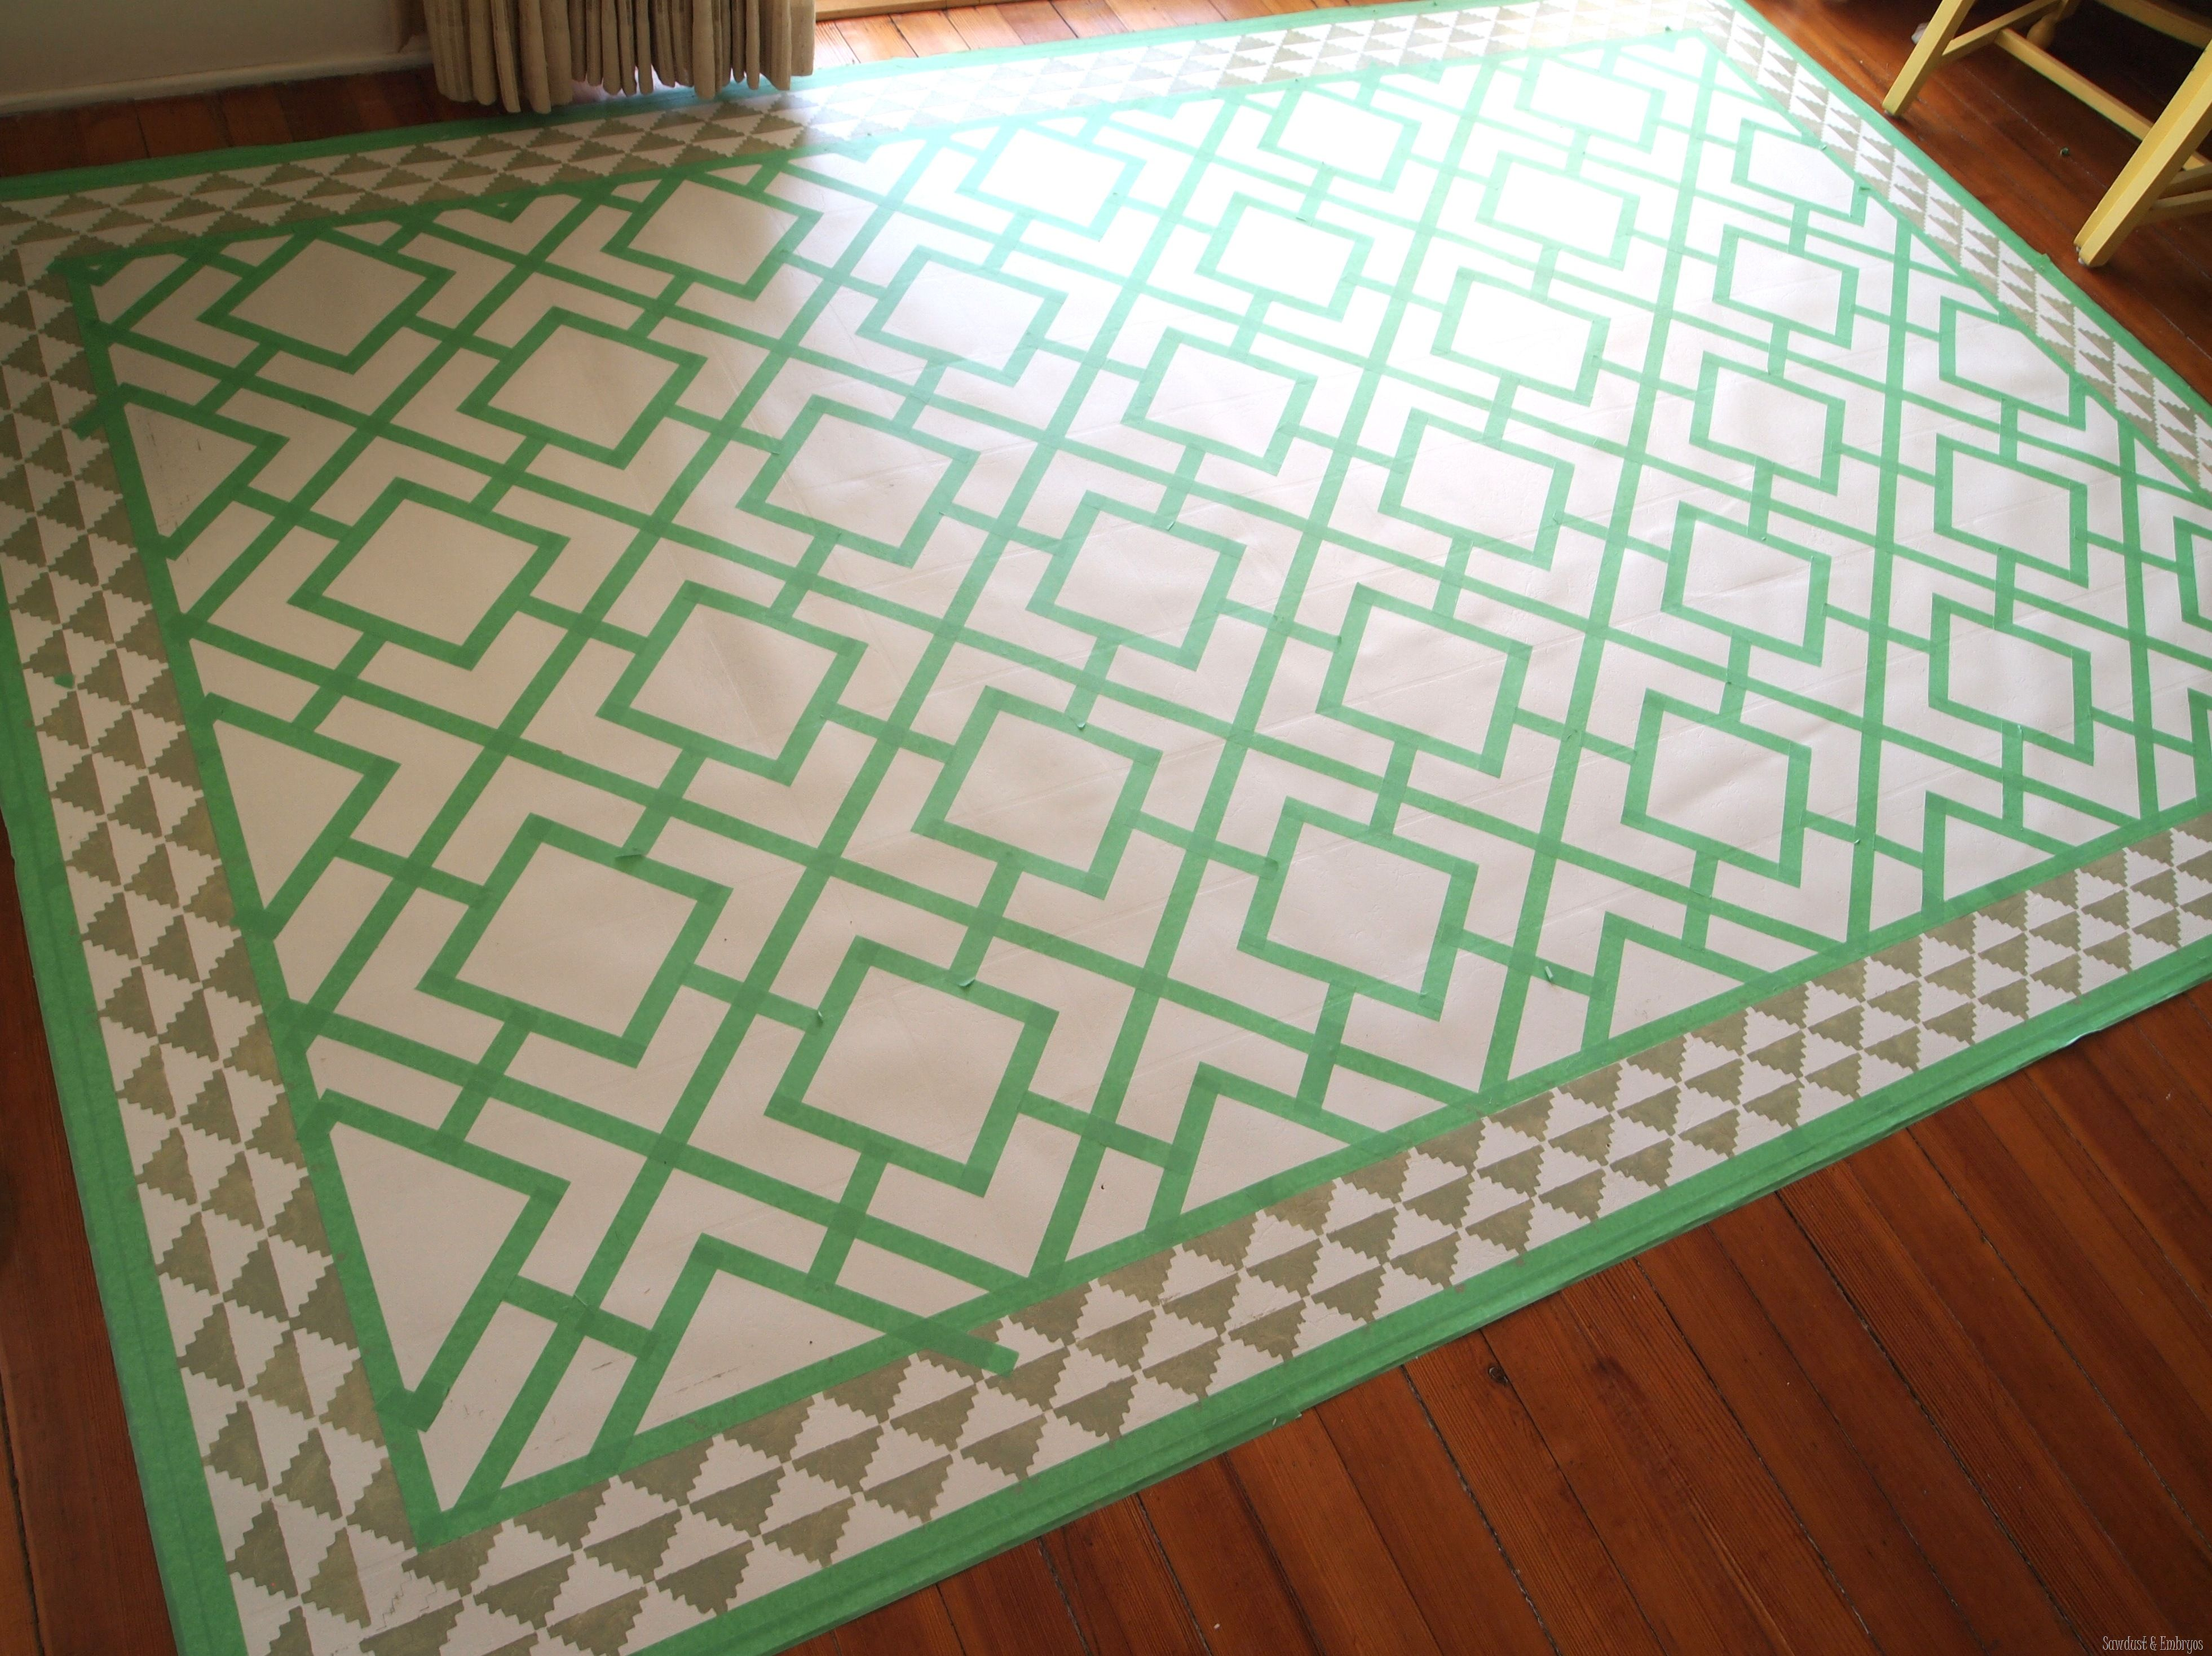 Paint A Remnant Of Linoleum To Look Like Legit Area Rug For Under Your Dining Table Sawdust And Embryos